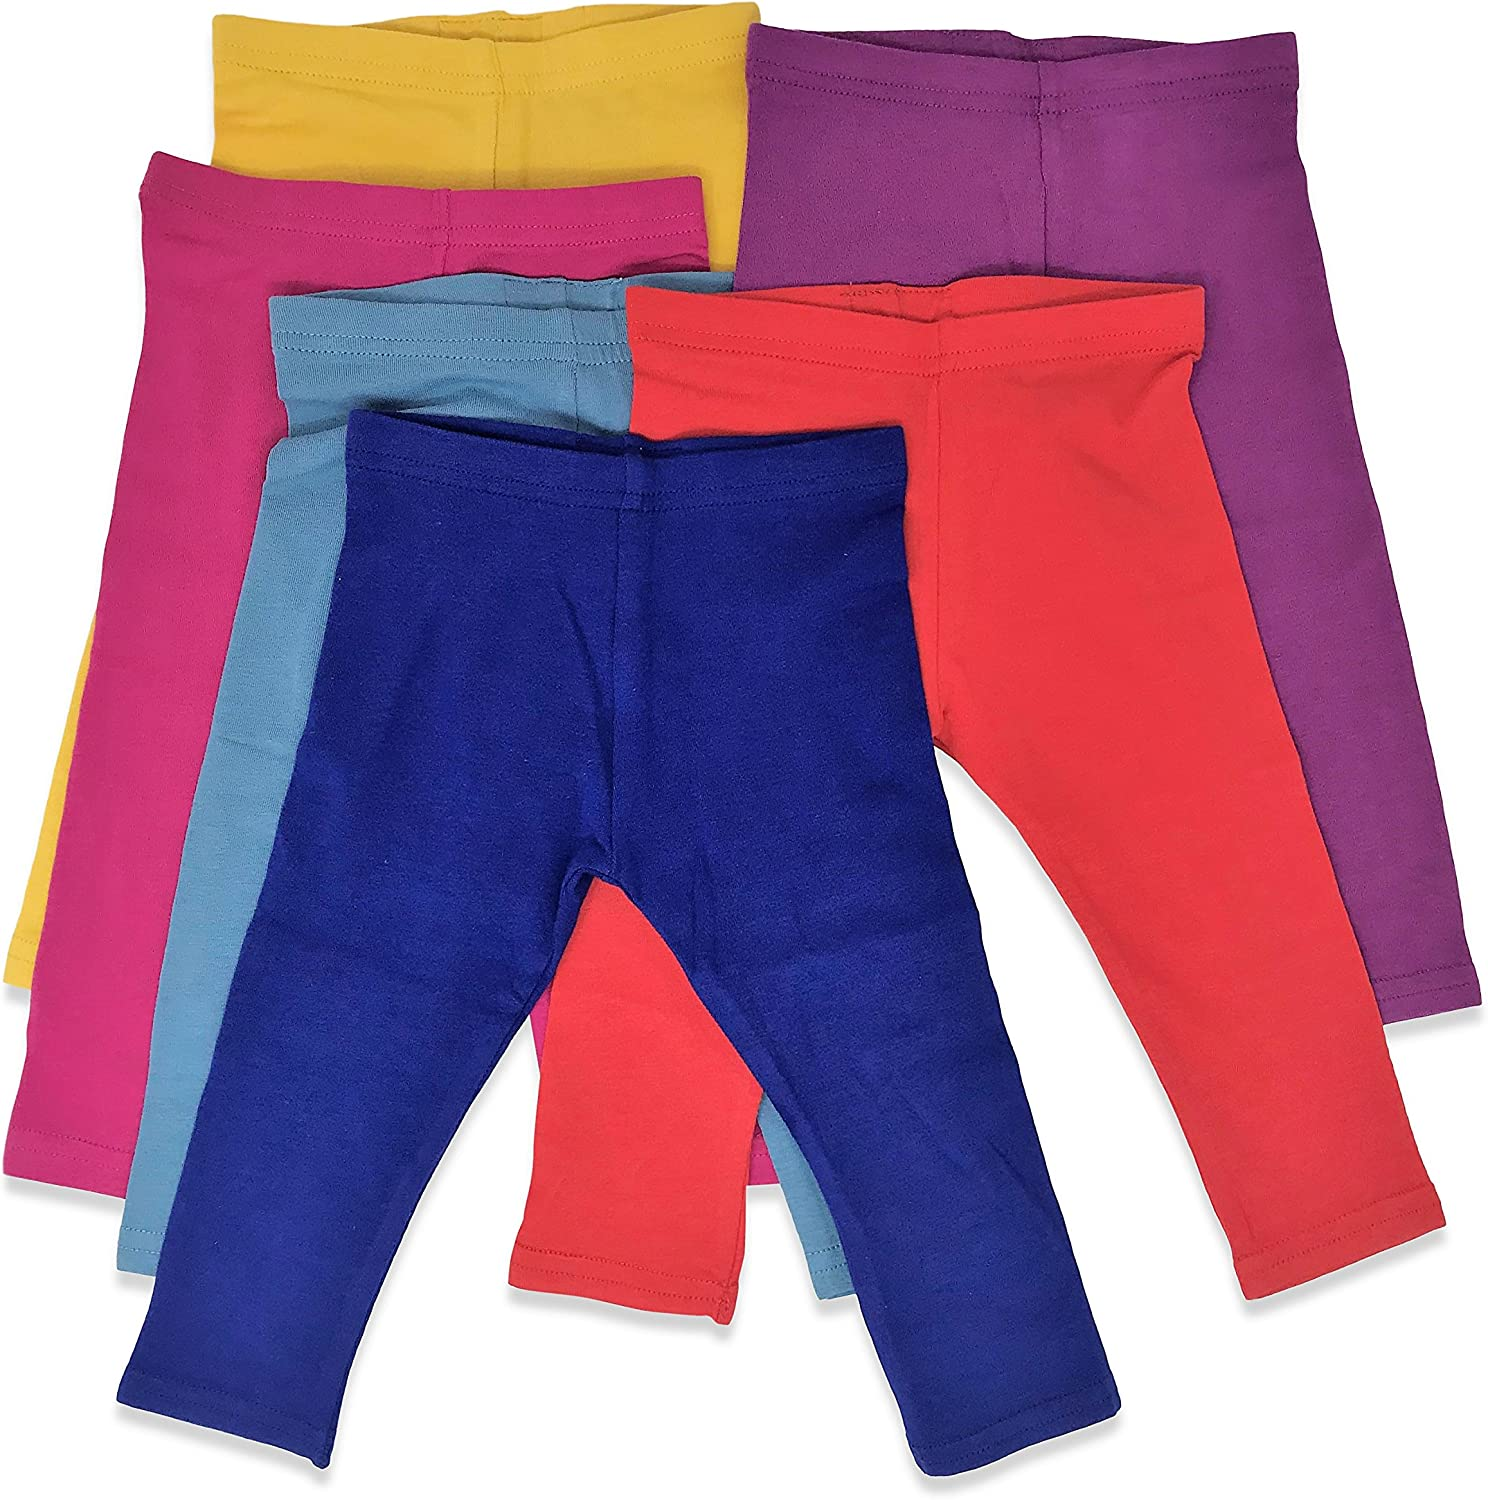 Baby gender neutral leggings-Cotton jersey leggings Baby leggings-Unisex baby pants-Elastic free pants-Baby shower gift-Baby spring clothes